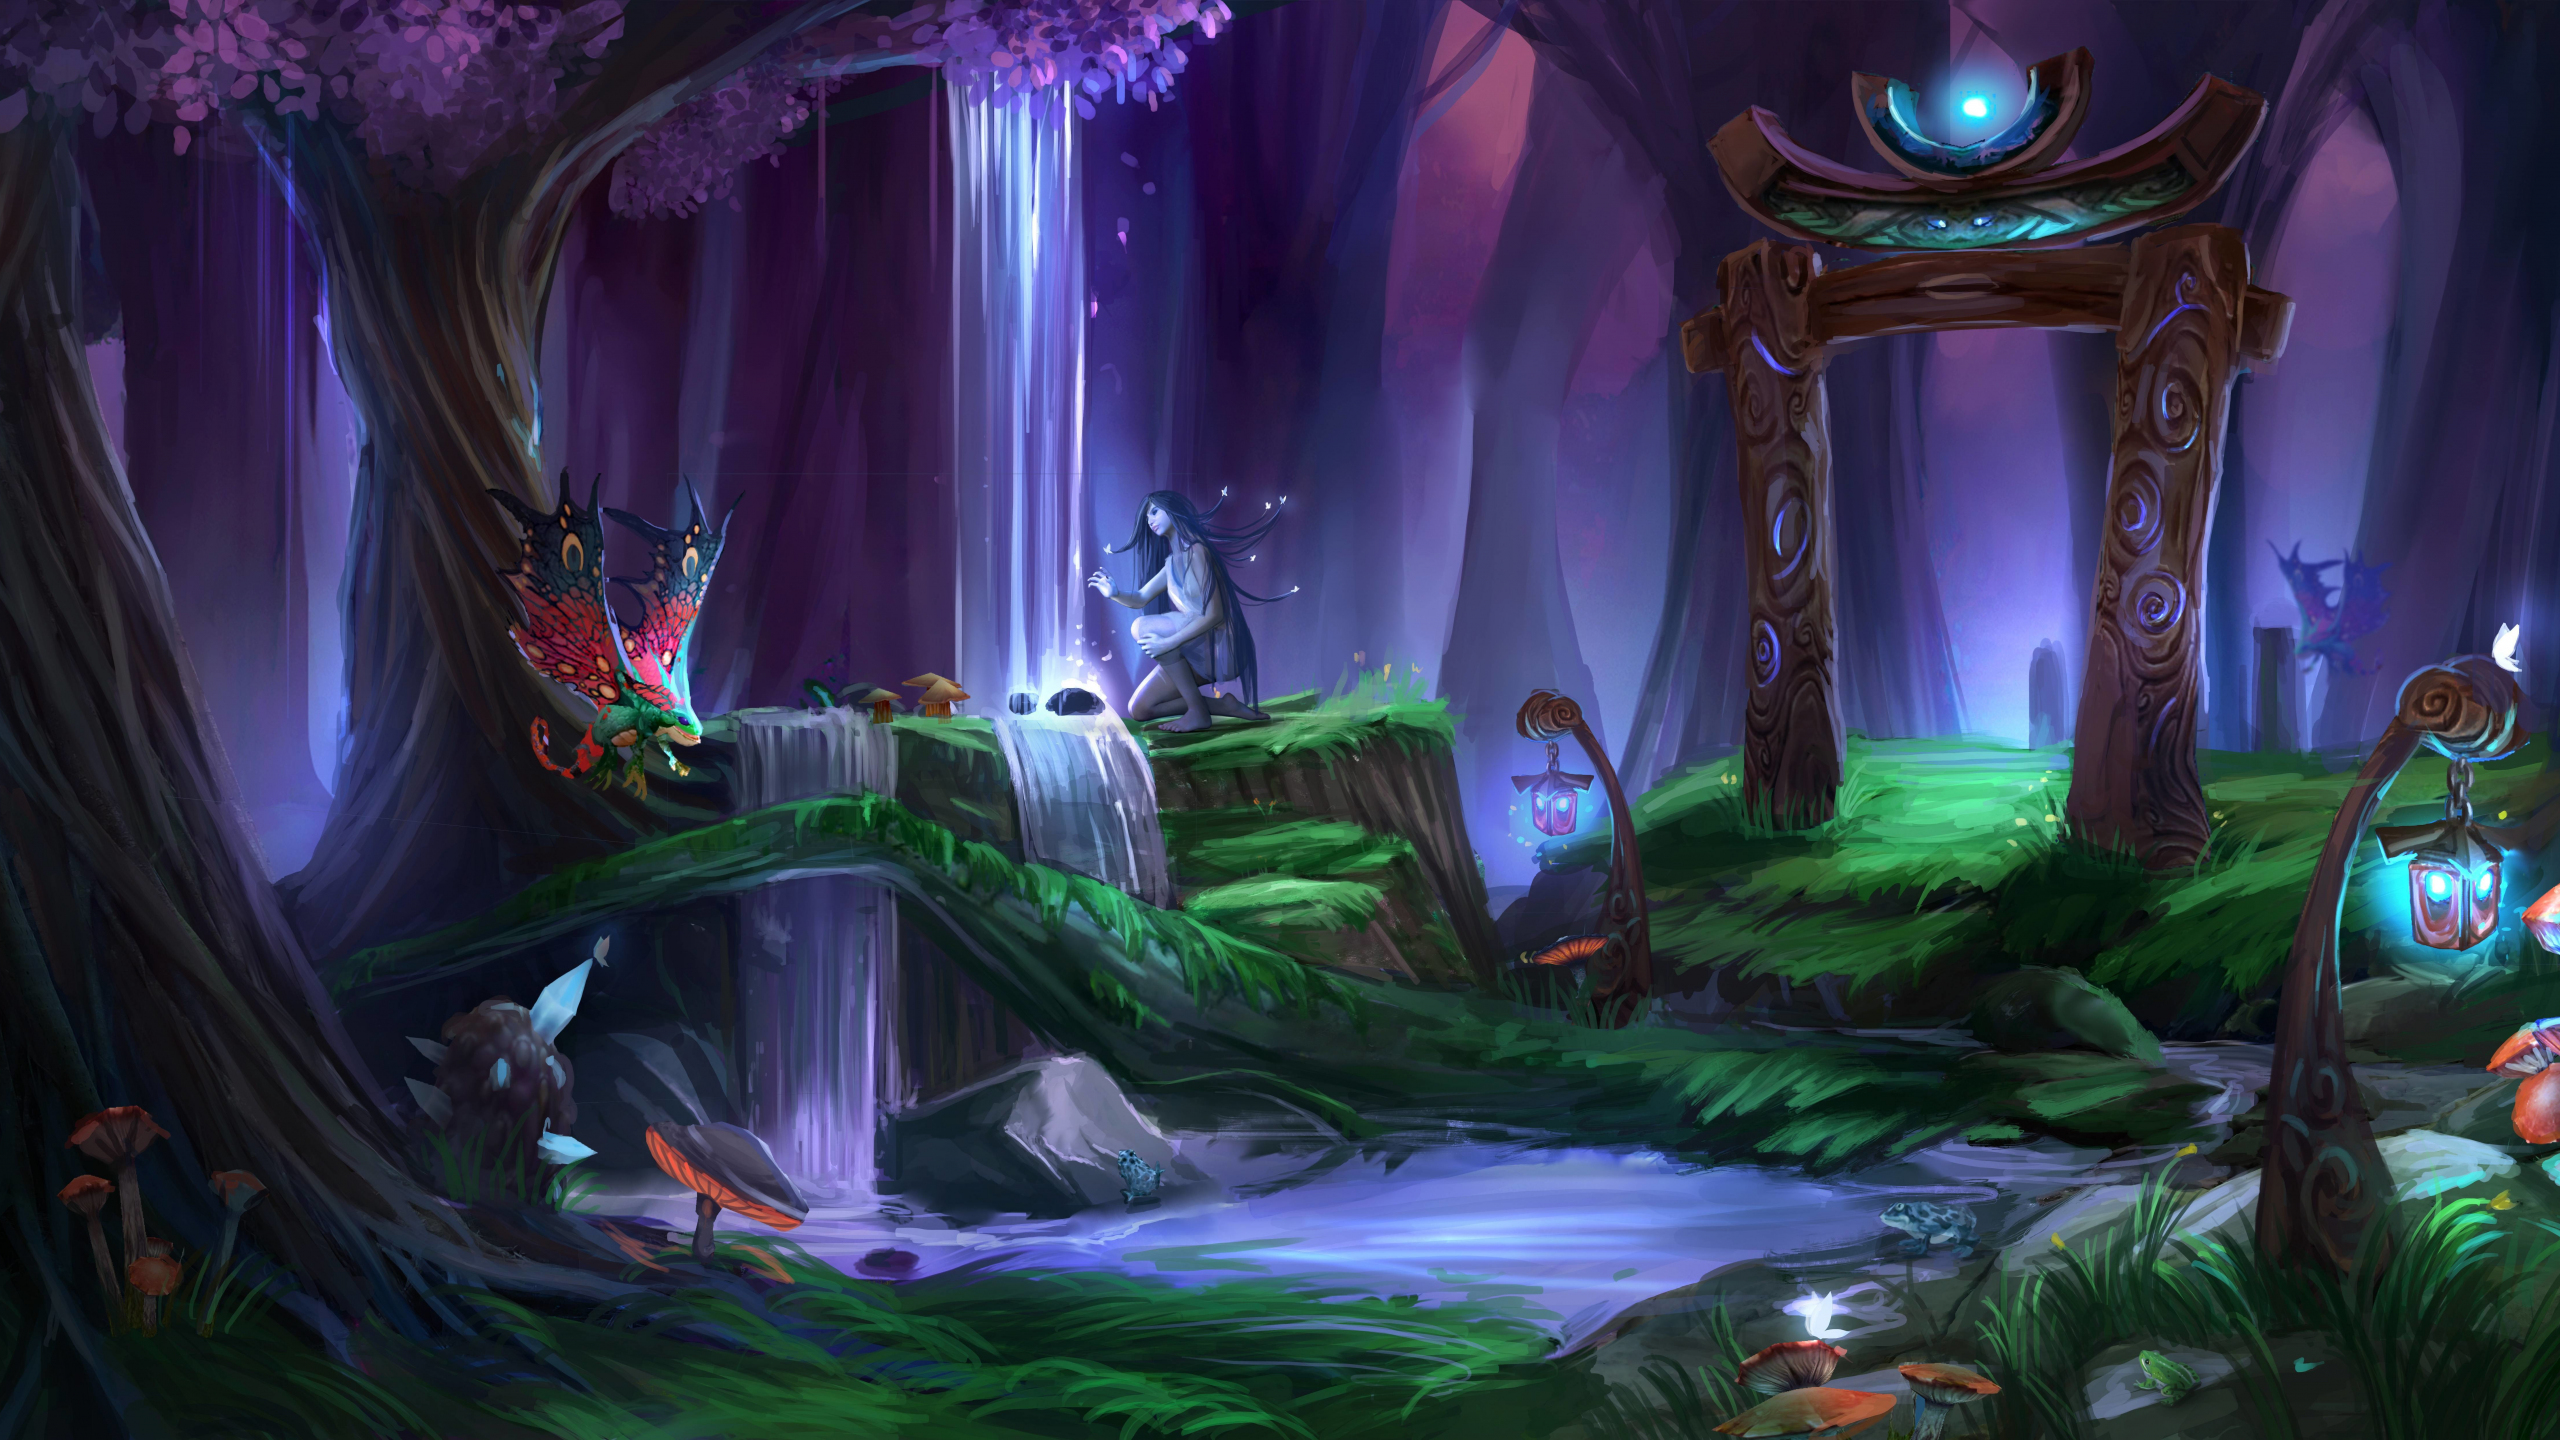 Download 2560x1440 Wallpaper World Of Warcraft Online Game Video Game Digital At Dual Wide Widescreen 16 9 Widescreen 2560x1440 Hd Image Background 1503